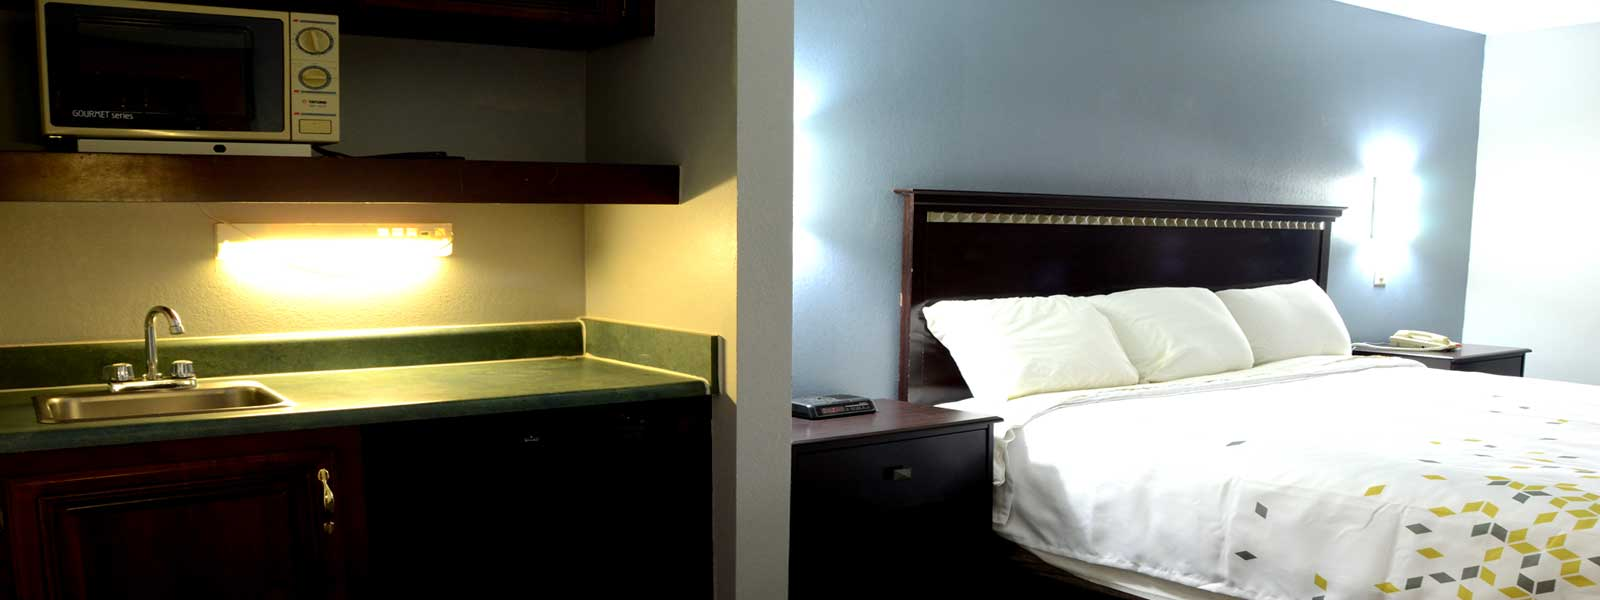 Motels in Clarksville Budget Discount 3 Star Rating